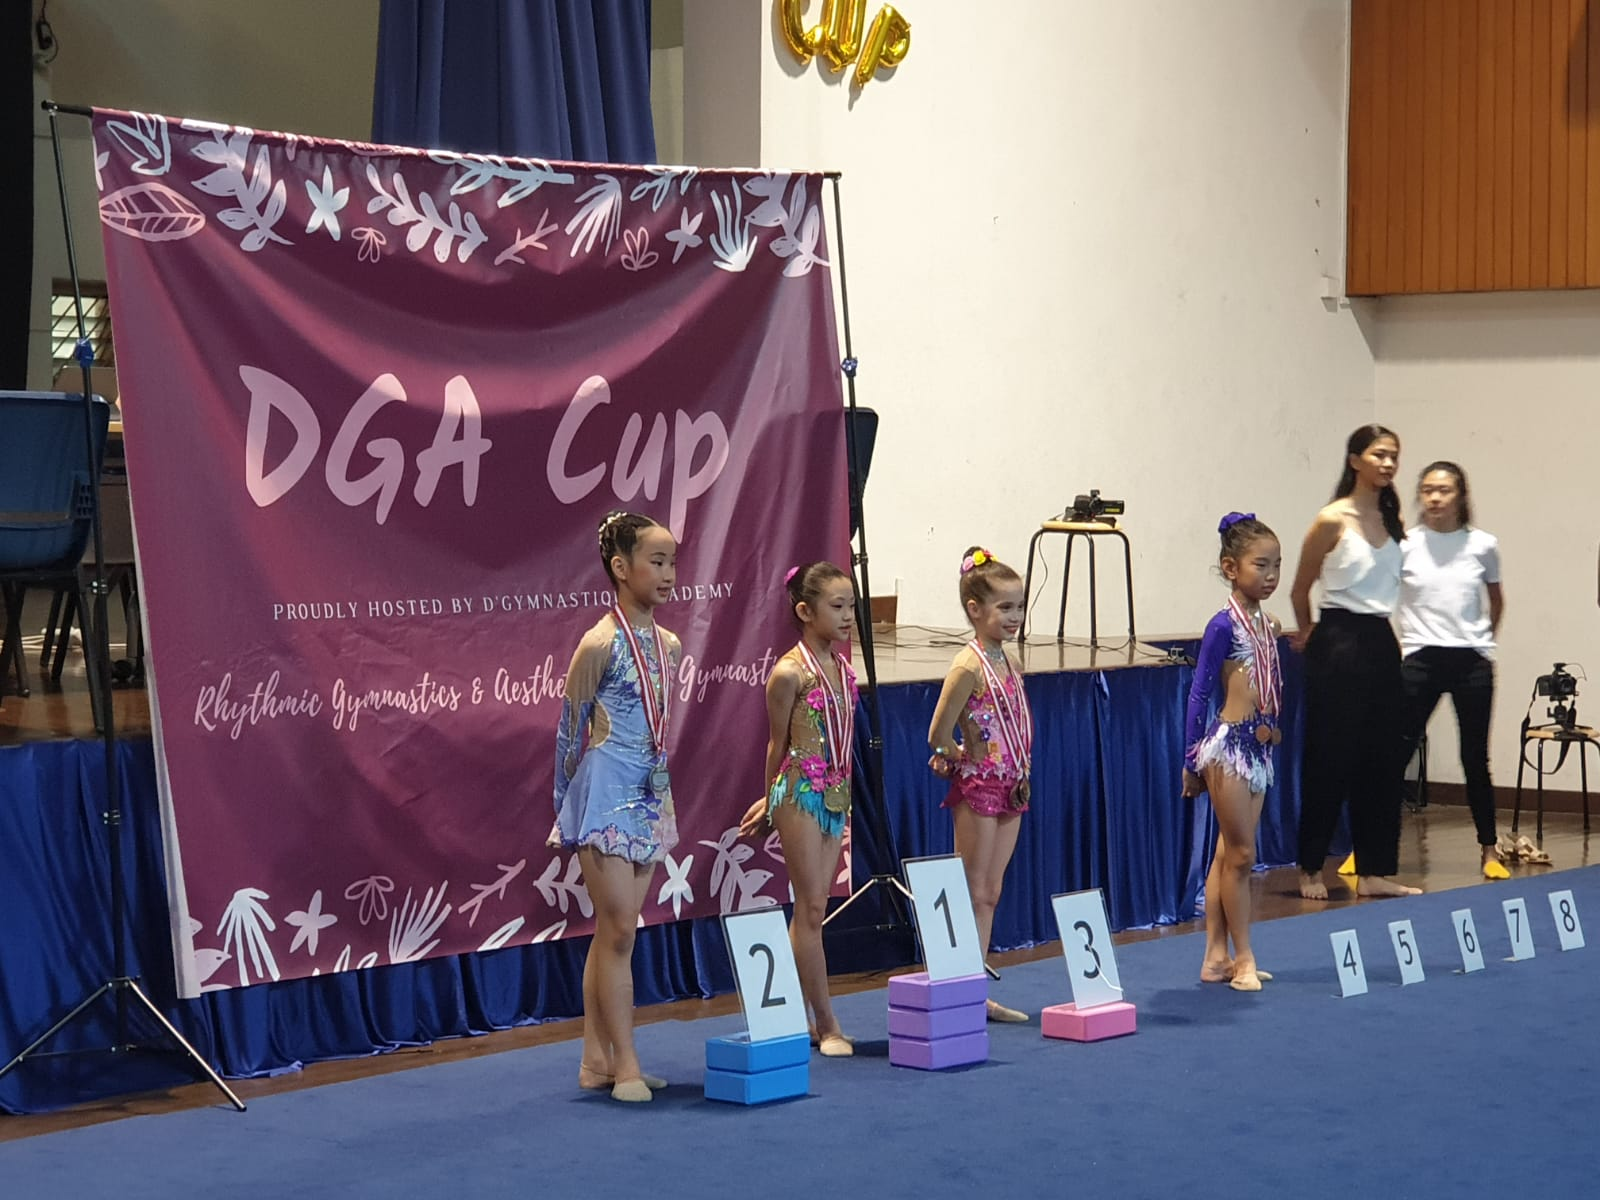 The 1st DGA Cup 2019 22